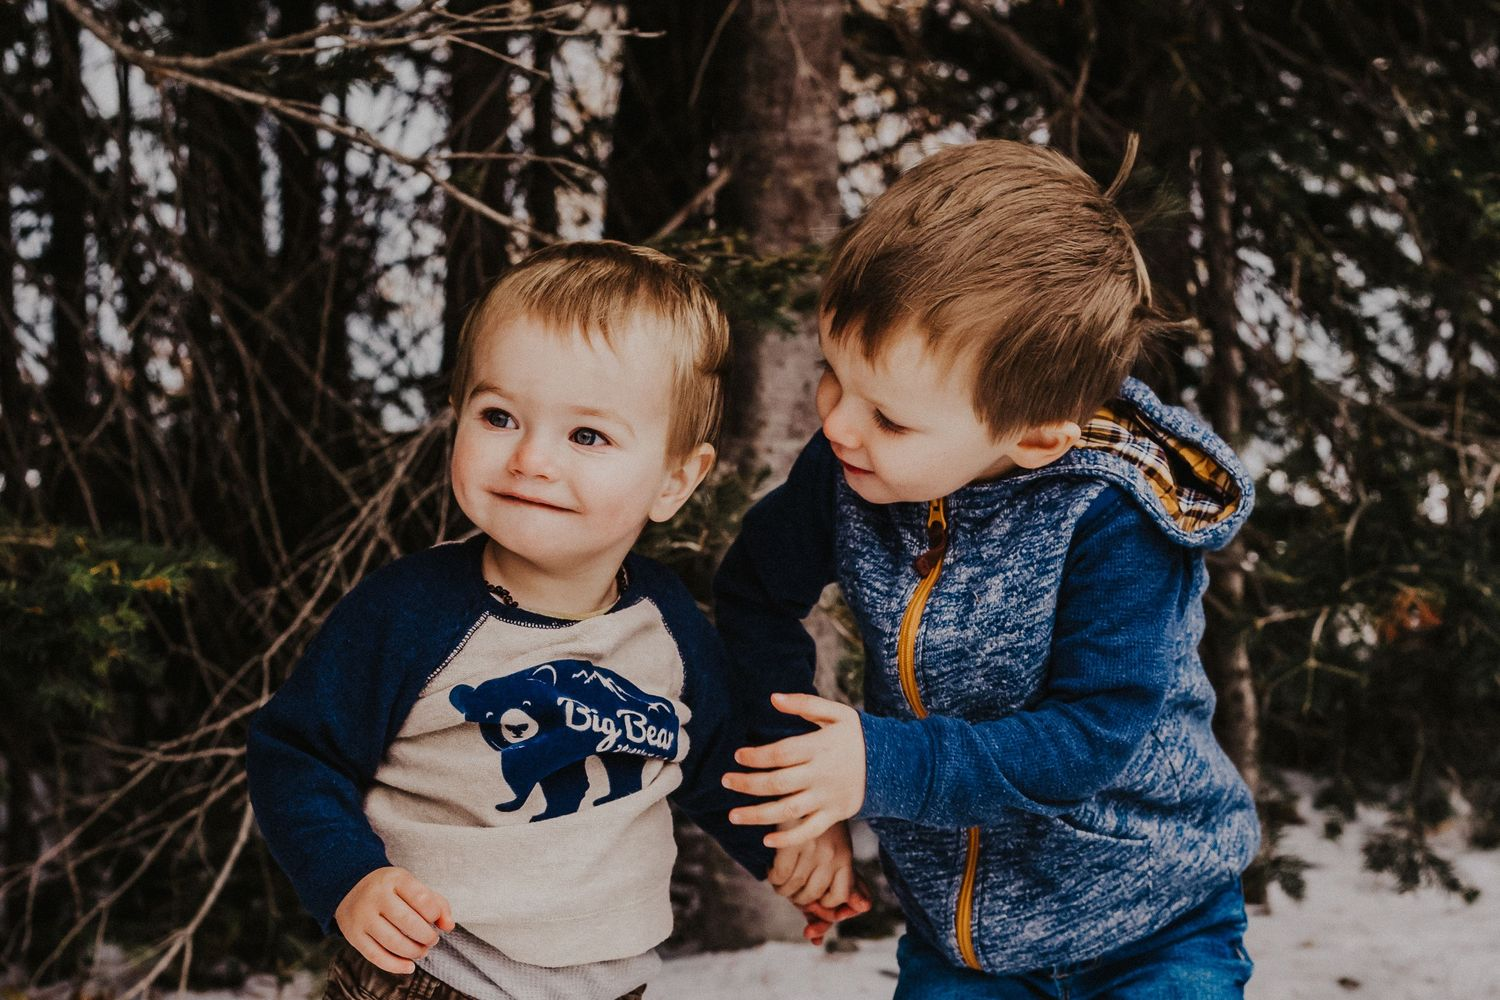 big brother lovingly holds younger brother in the forest